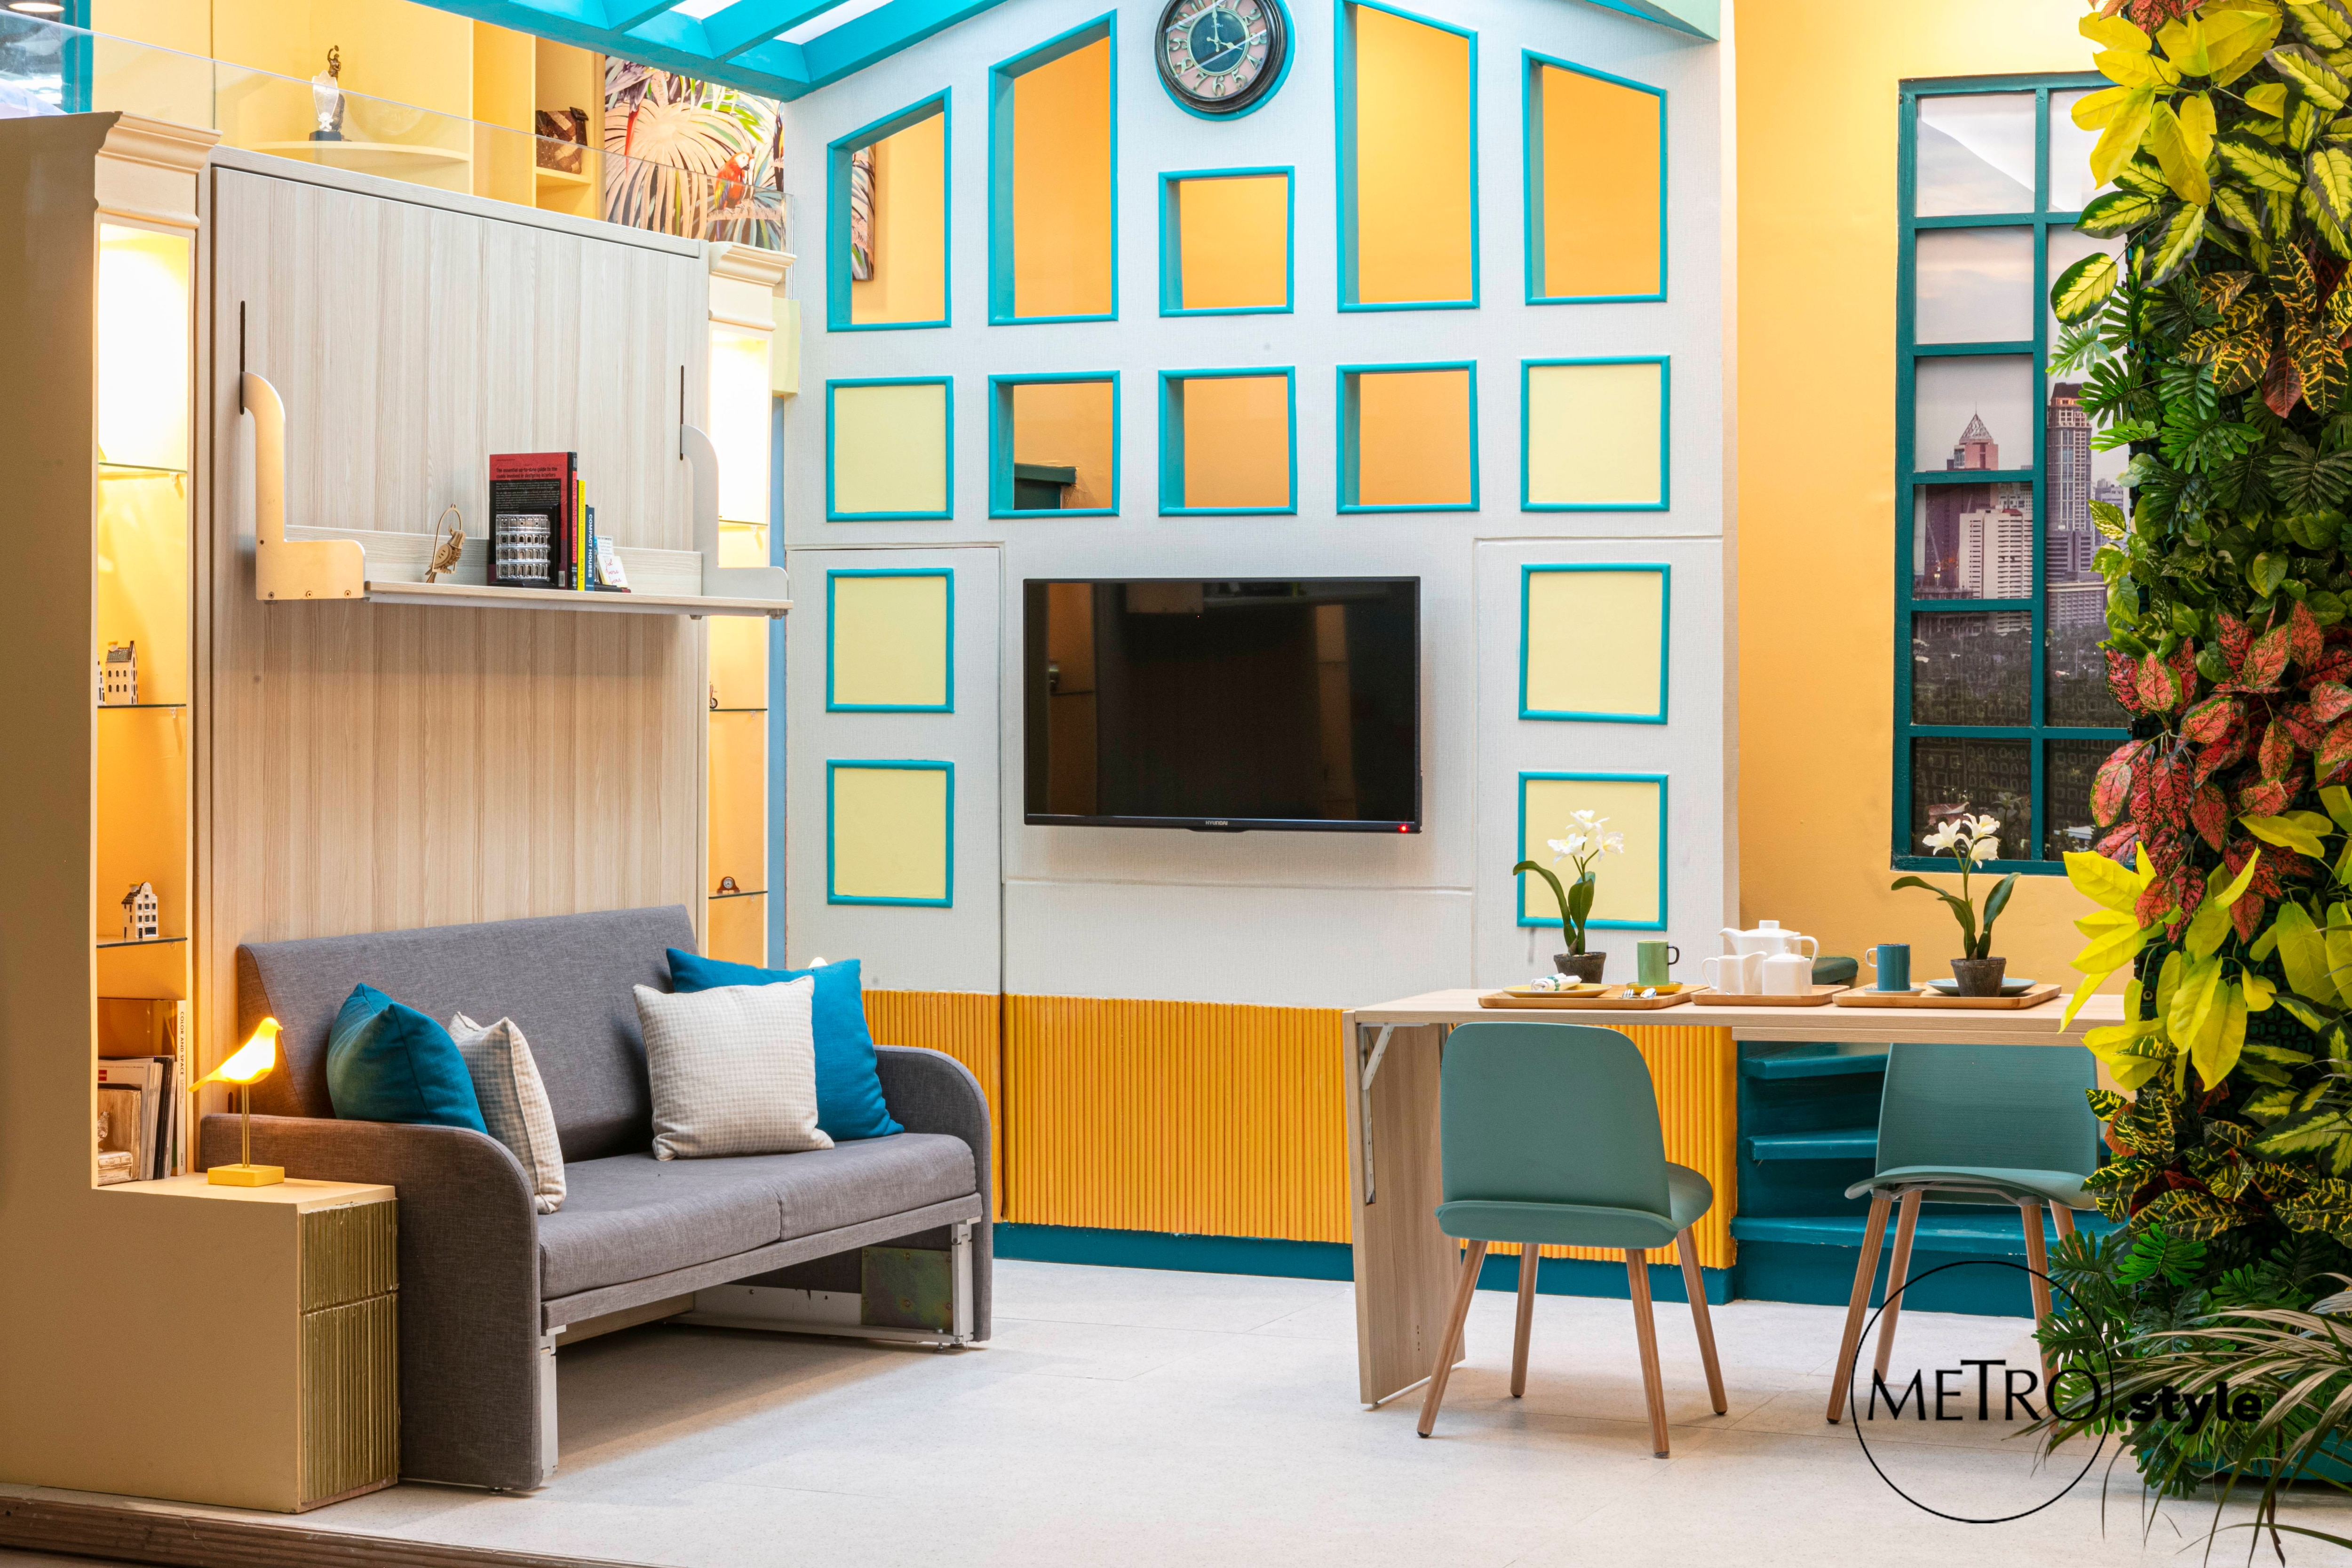 In Photos Homes With Geometrically Inspired Spaces By Philippine School Of Interior Design S 2019 Graduating Students Metro Style